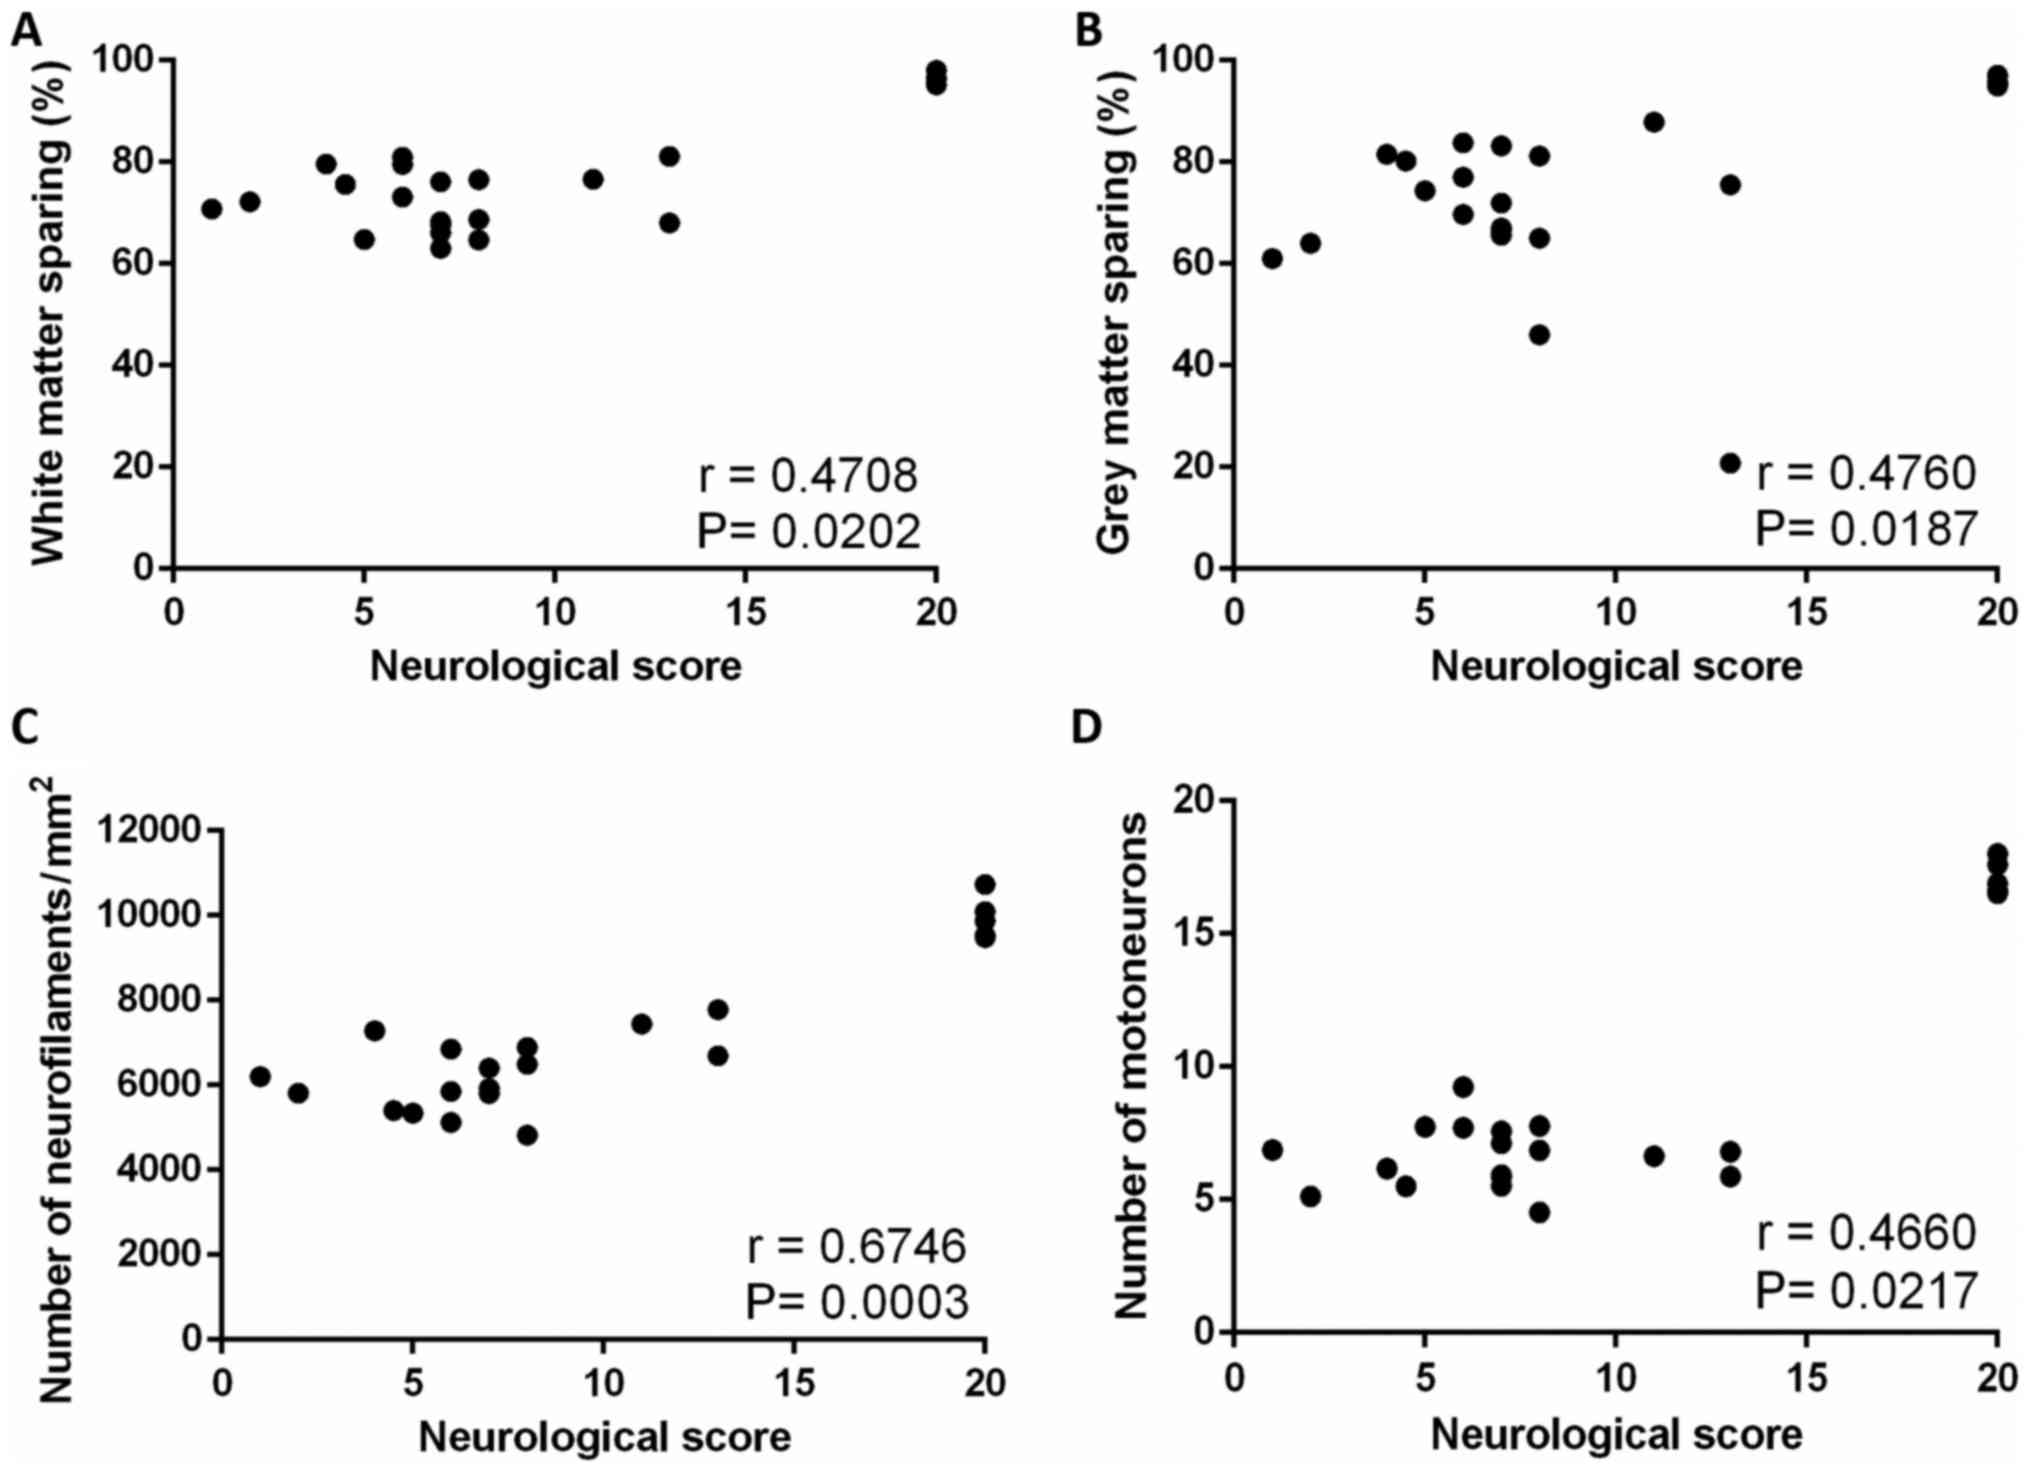 Hypothermic Treatment After Computercontrolled Compression In Figures 514 Block Diagrams Of Led Report Figure 14 Scatterplots Illustrating Relationship Between Final Neurological Score Animals From All Experimental Groups And A Cumulative White Matter